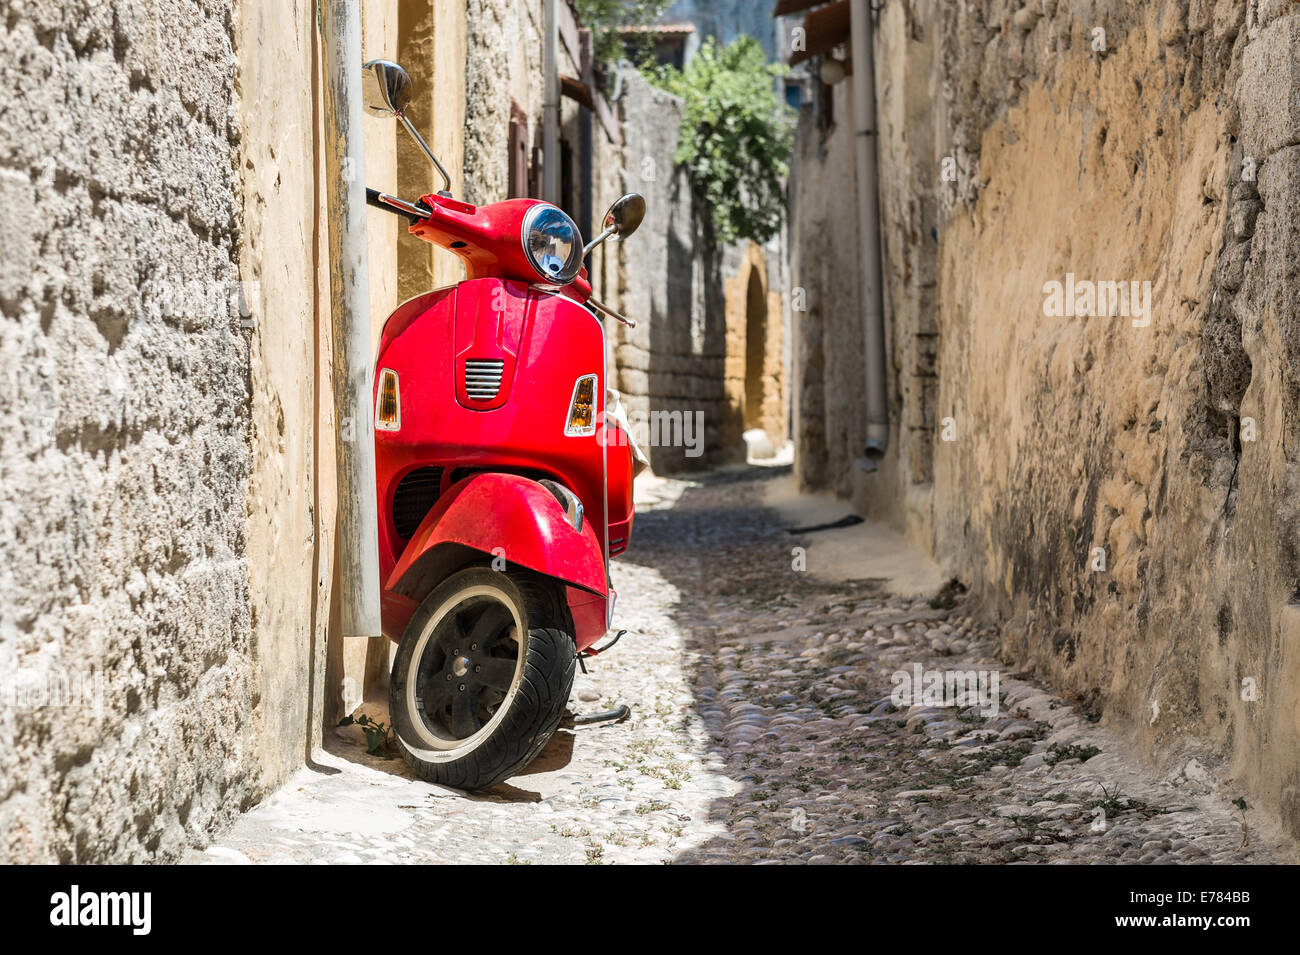 Classic red scooter - Stock Image